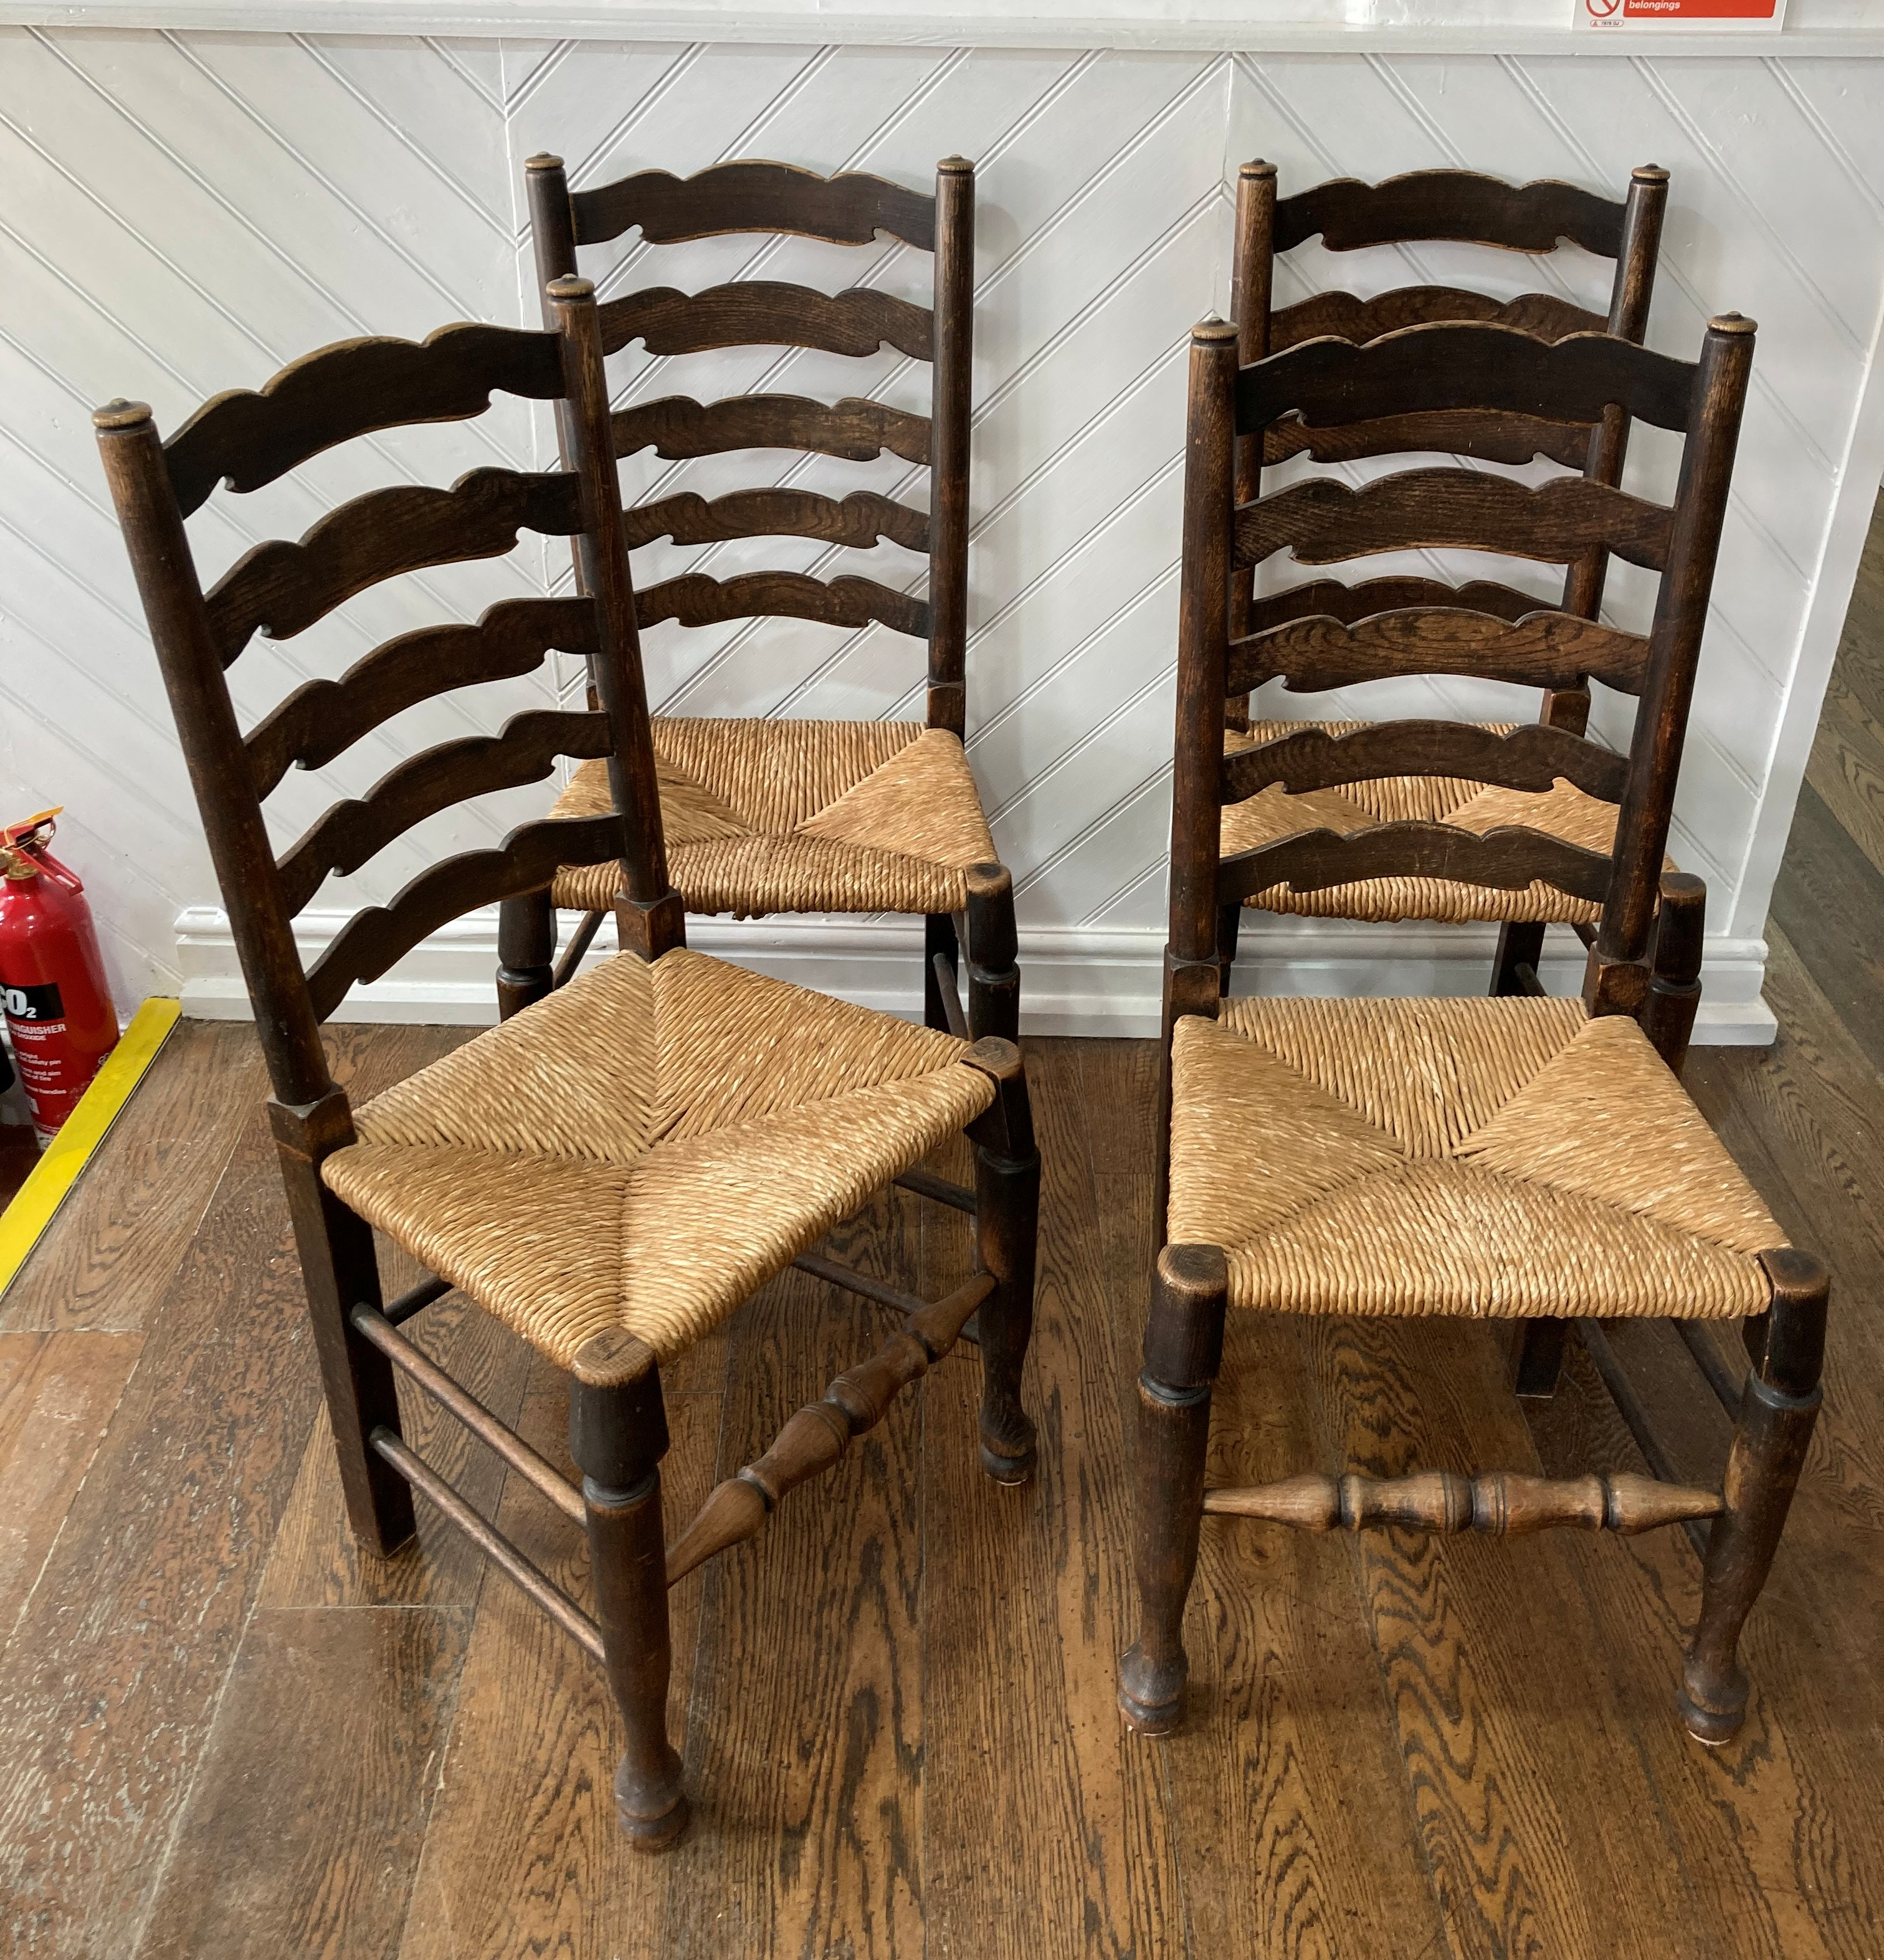 A set of four early 20thC oak Ladder-back Chairs, the laddered back over the envelope rush seats, - Image 2 of 3